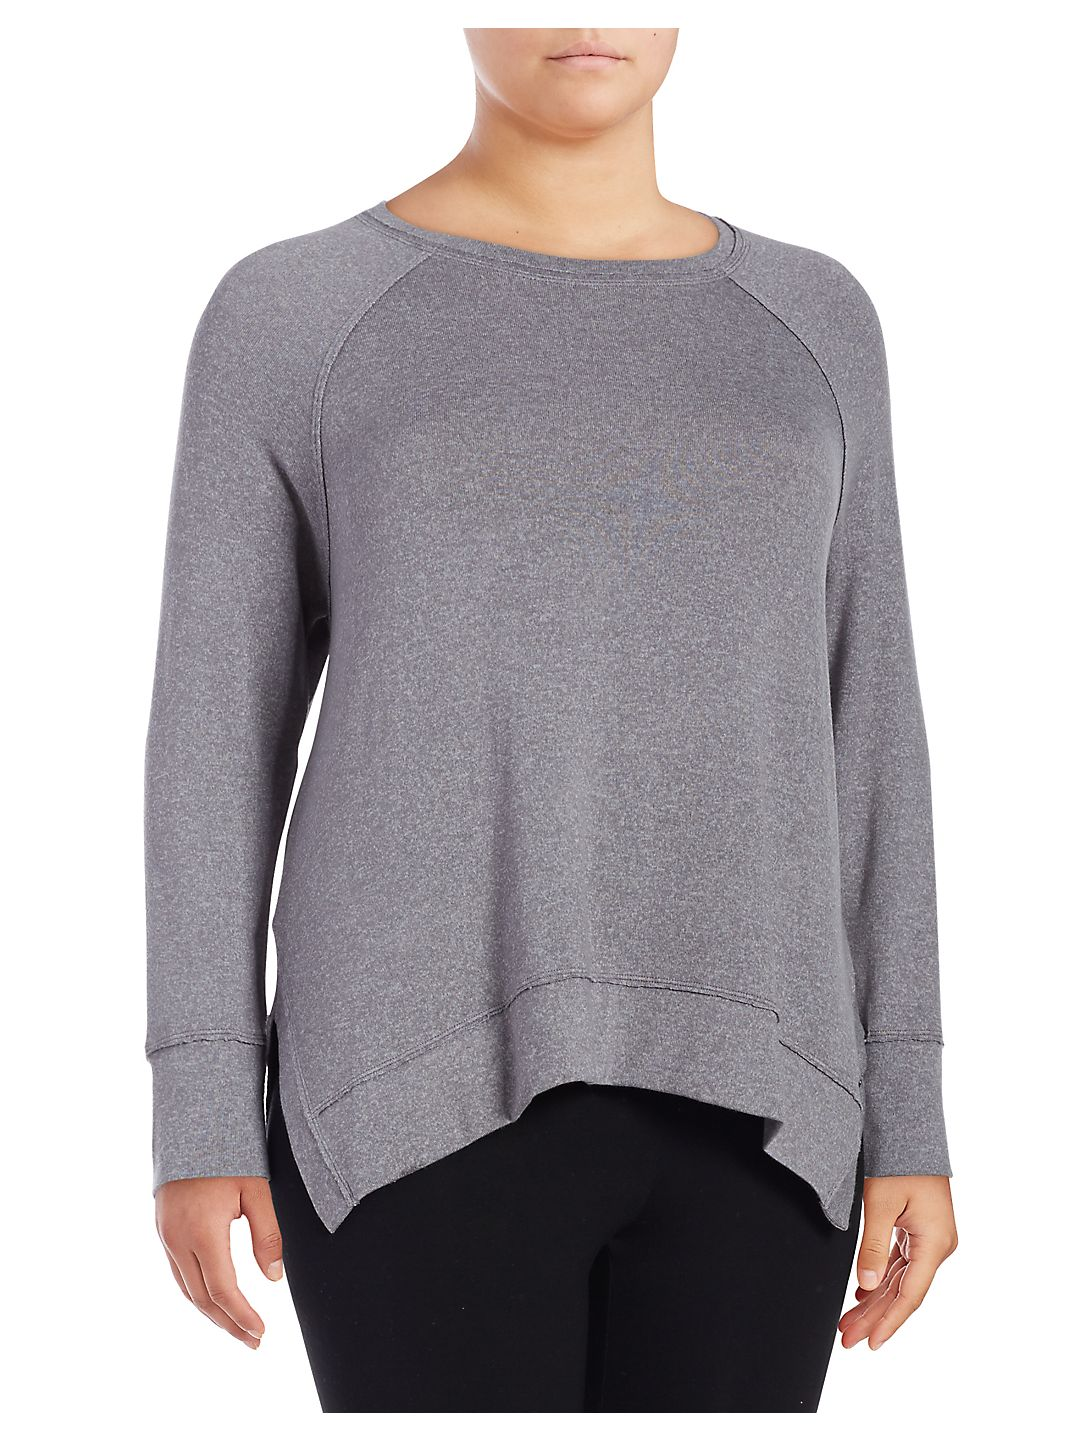 Plus Lightweight Performance Sweatshirt